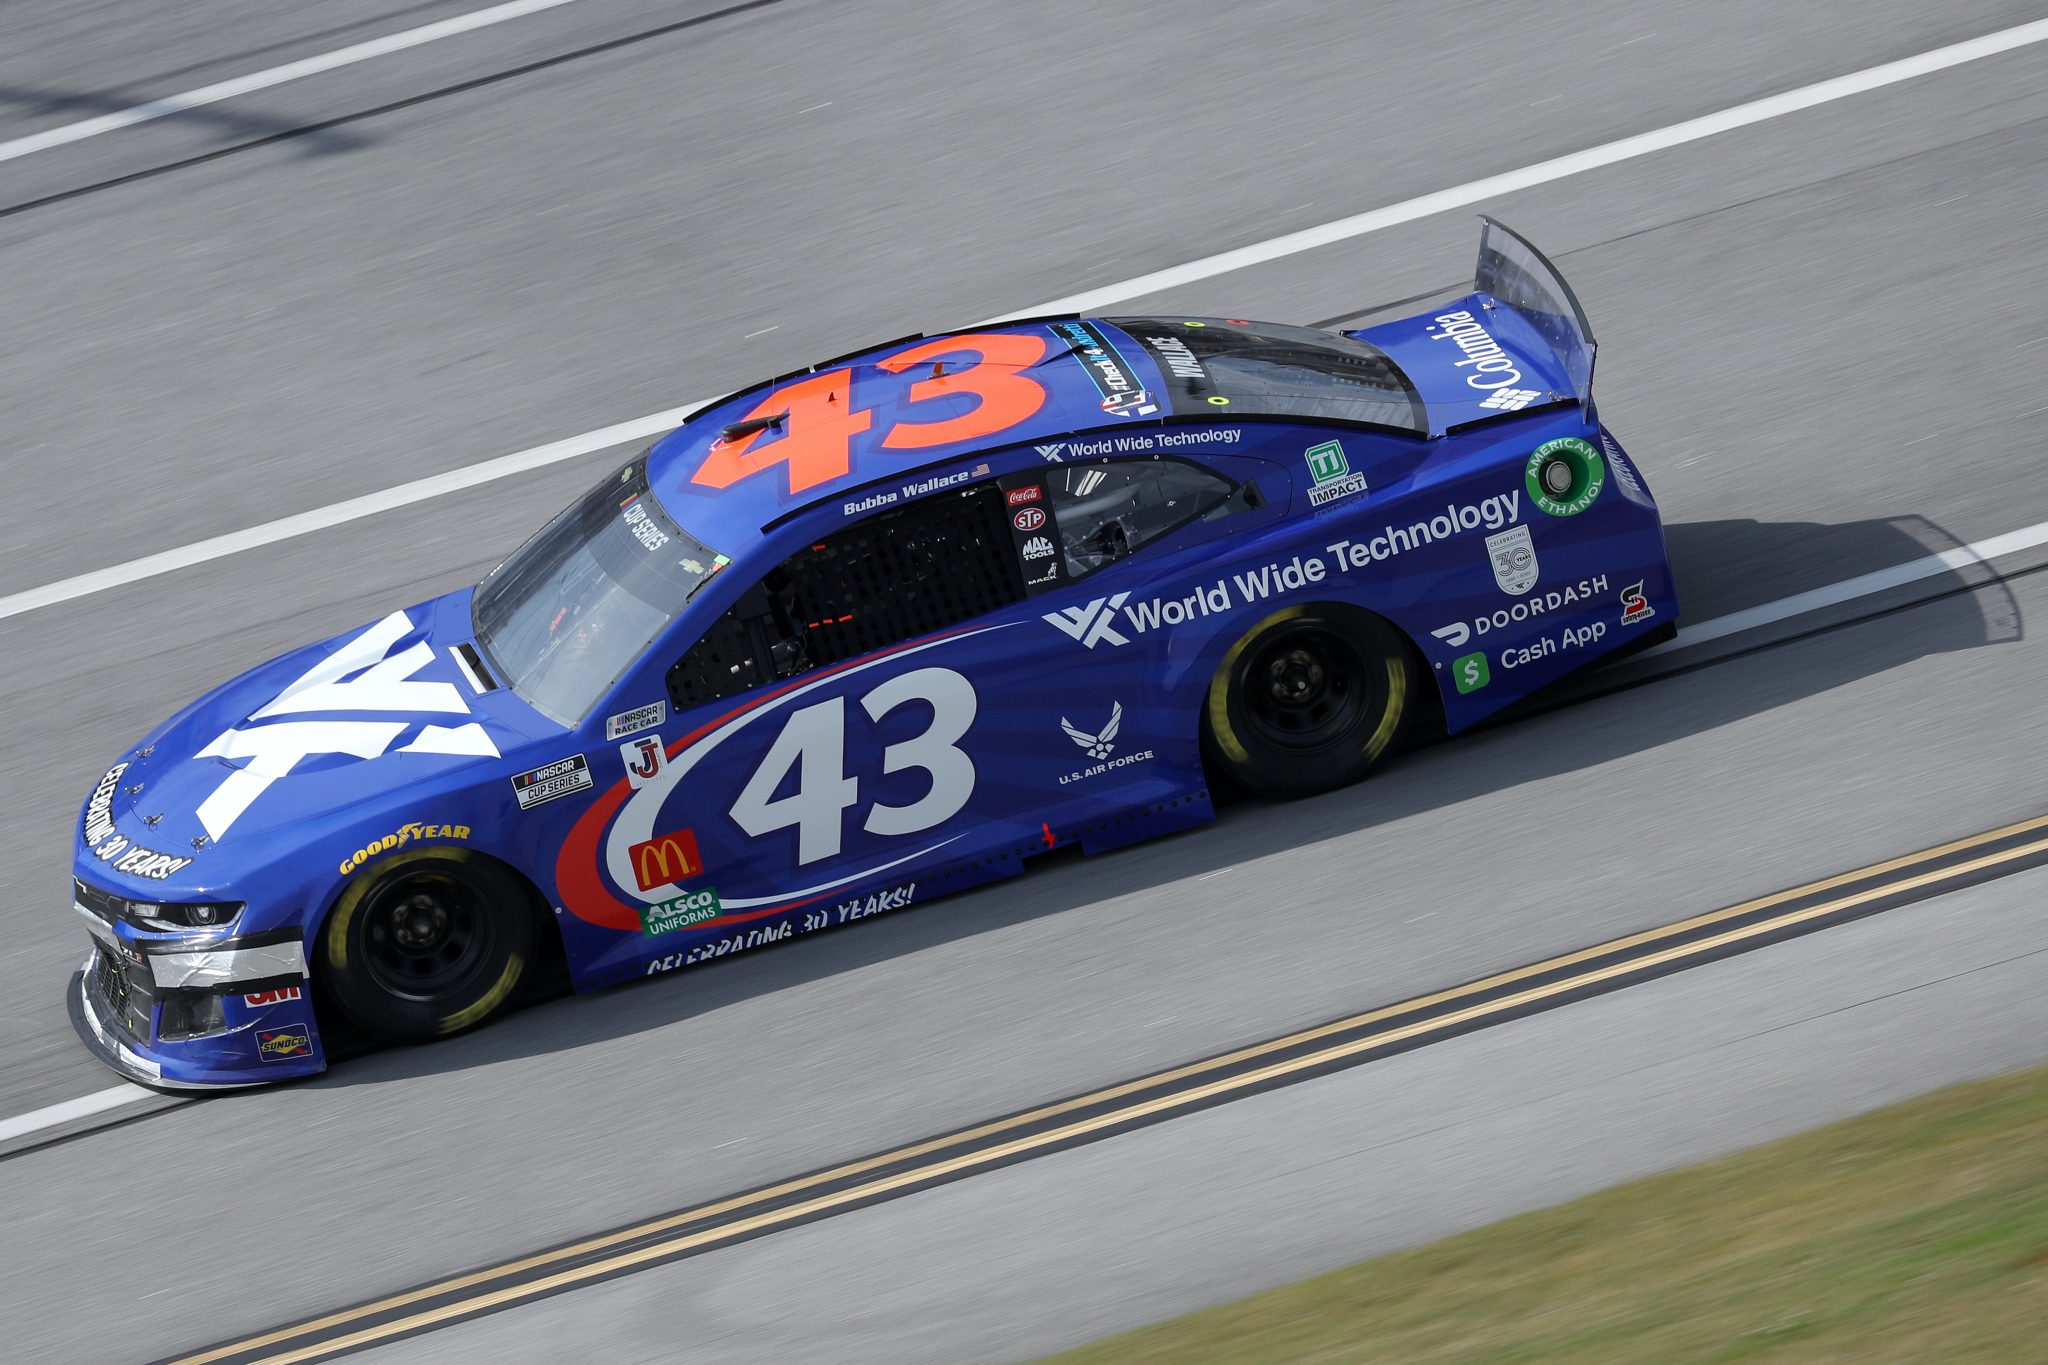 TALLADEGA, ALABAMA - OCTOBER 04: Bubba Wallace, driver of the #43 World Wide Technology Chevrolet, drives during the NASCAR Cup Series YellaWood 500 at Talladega Superspeedway on October 04, 2020 in Talladega, Alabama. (Photo by Chris Graythen/Getty Images) | Getty Images